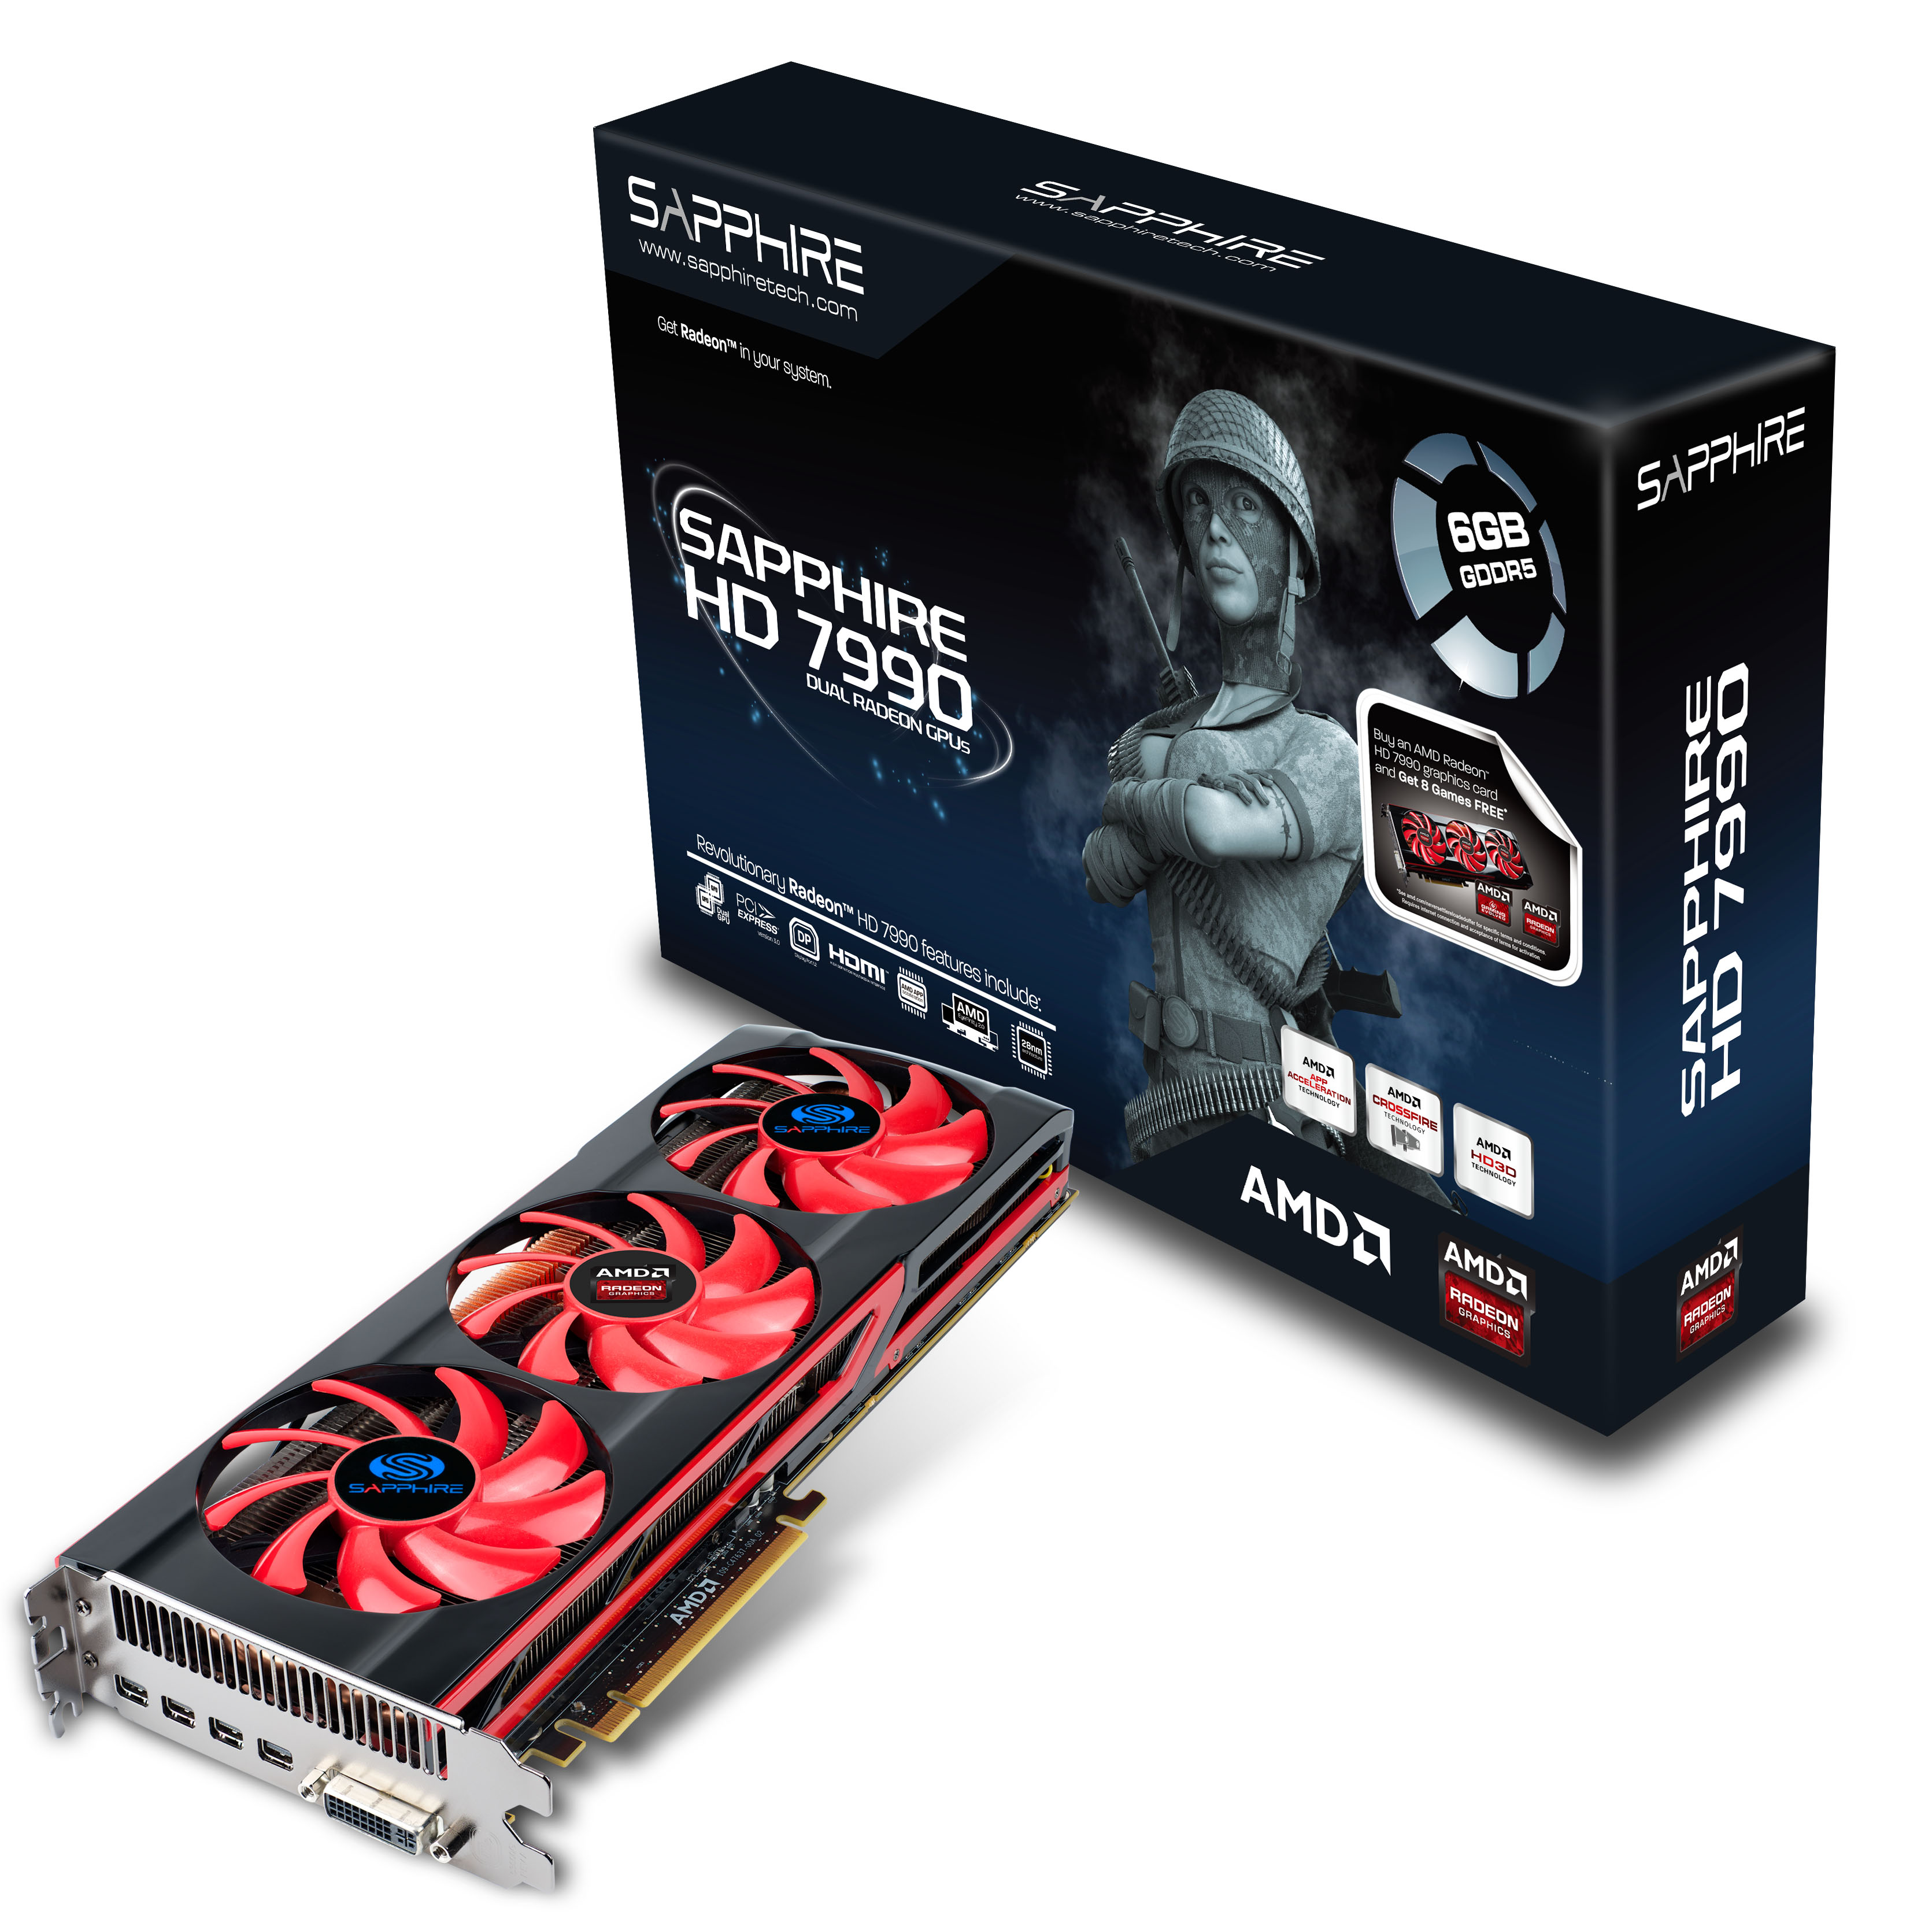 AMD and SAPPHIRE Releases The SAPPHIRE HD 7990 AMD, Sapphire, Video Card 1